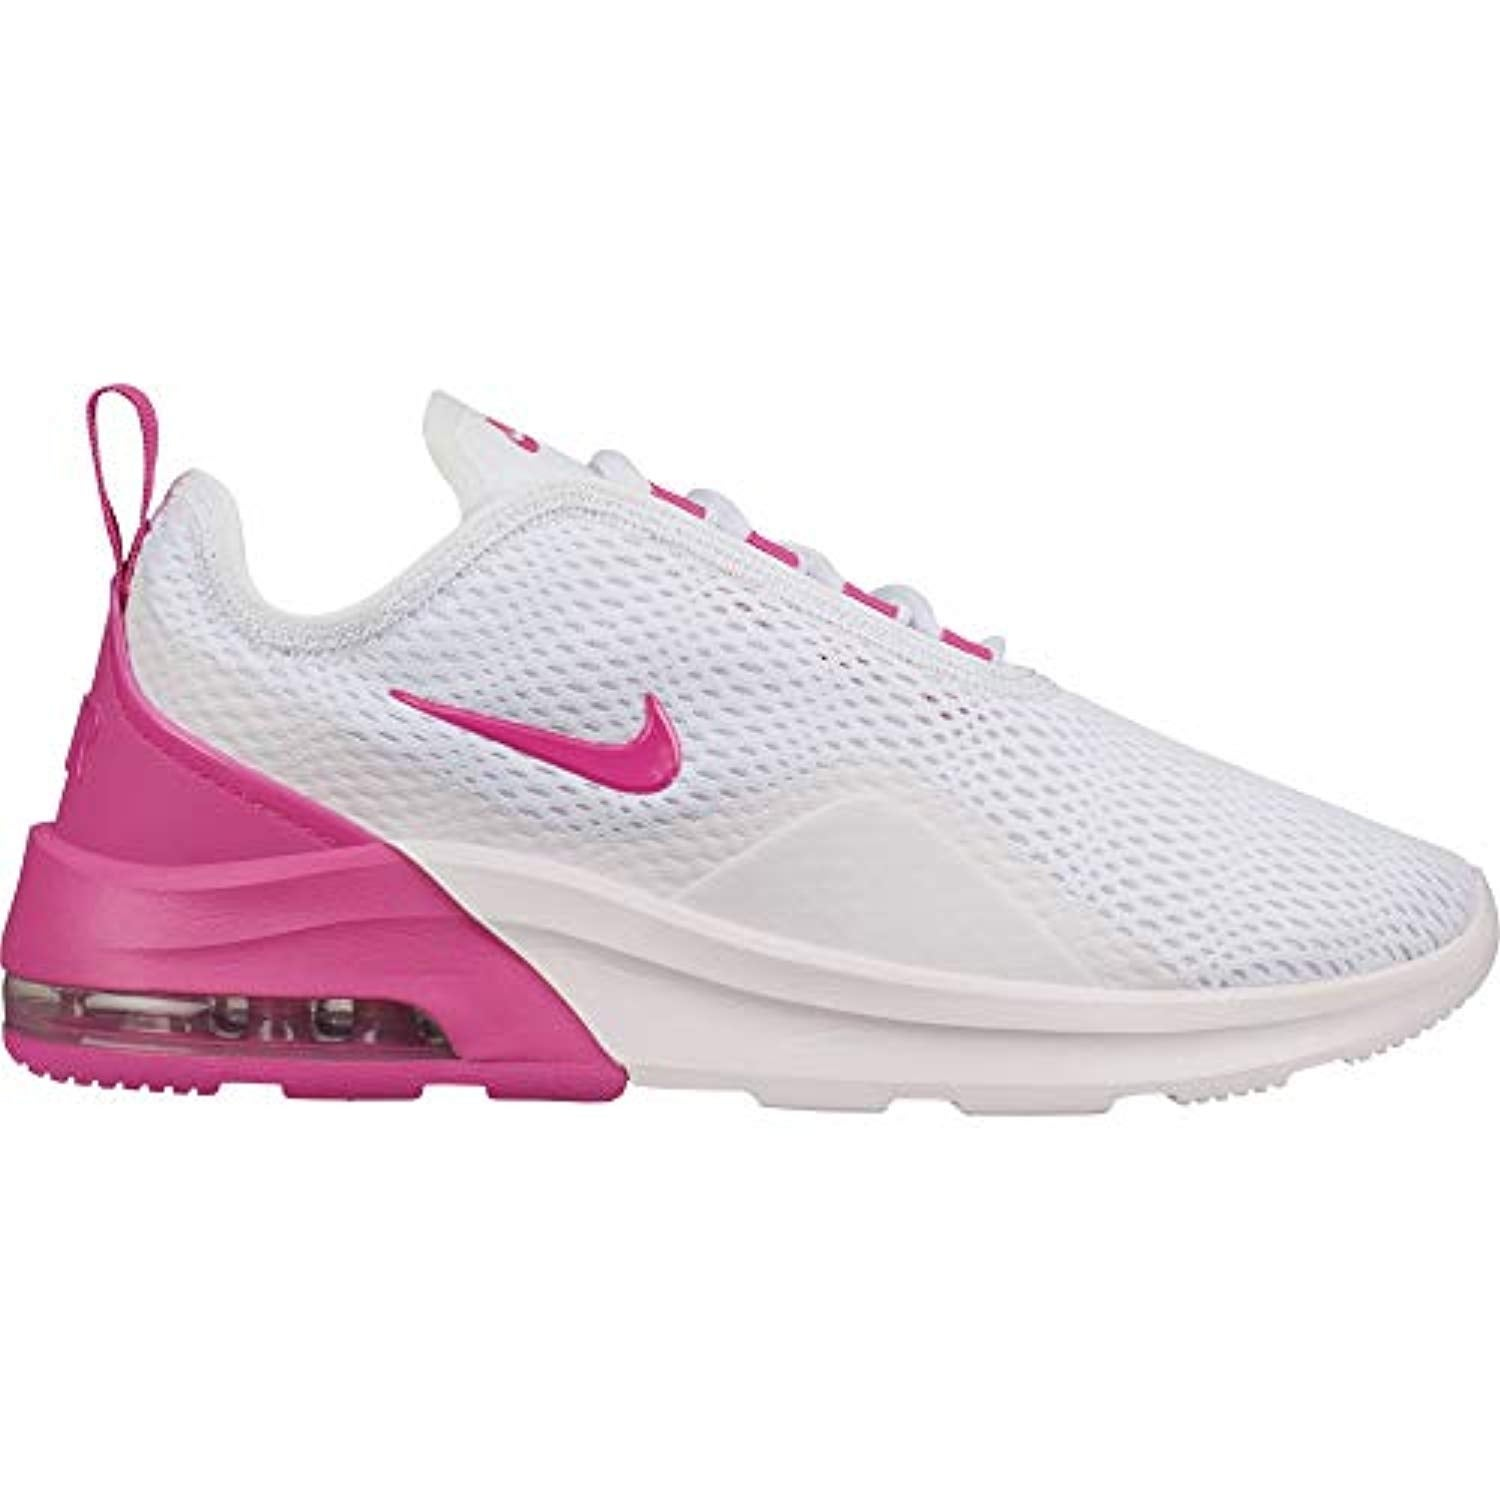 344c13226 Nike Shoes | Shop our Best Clothing & Shoes Deals Online at Overstock